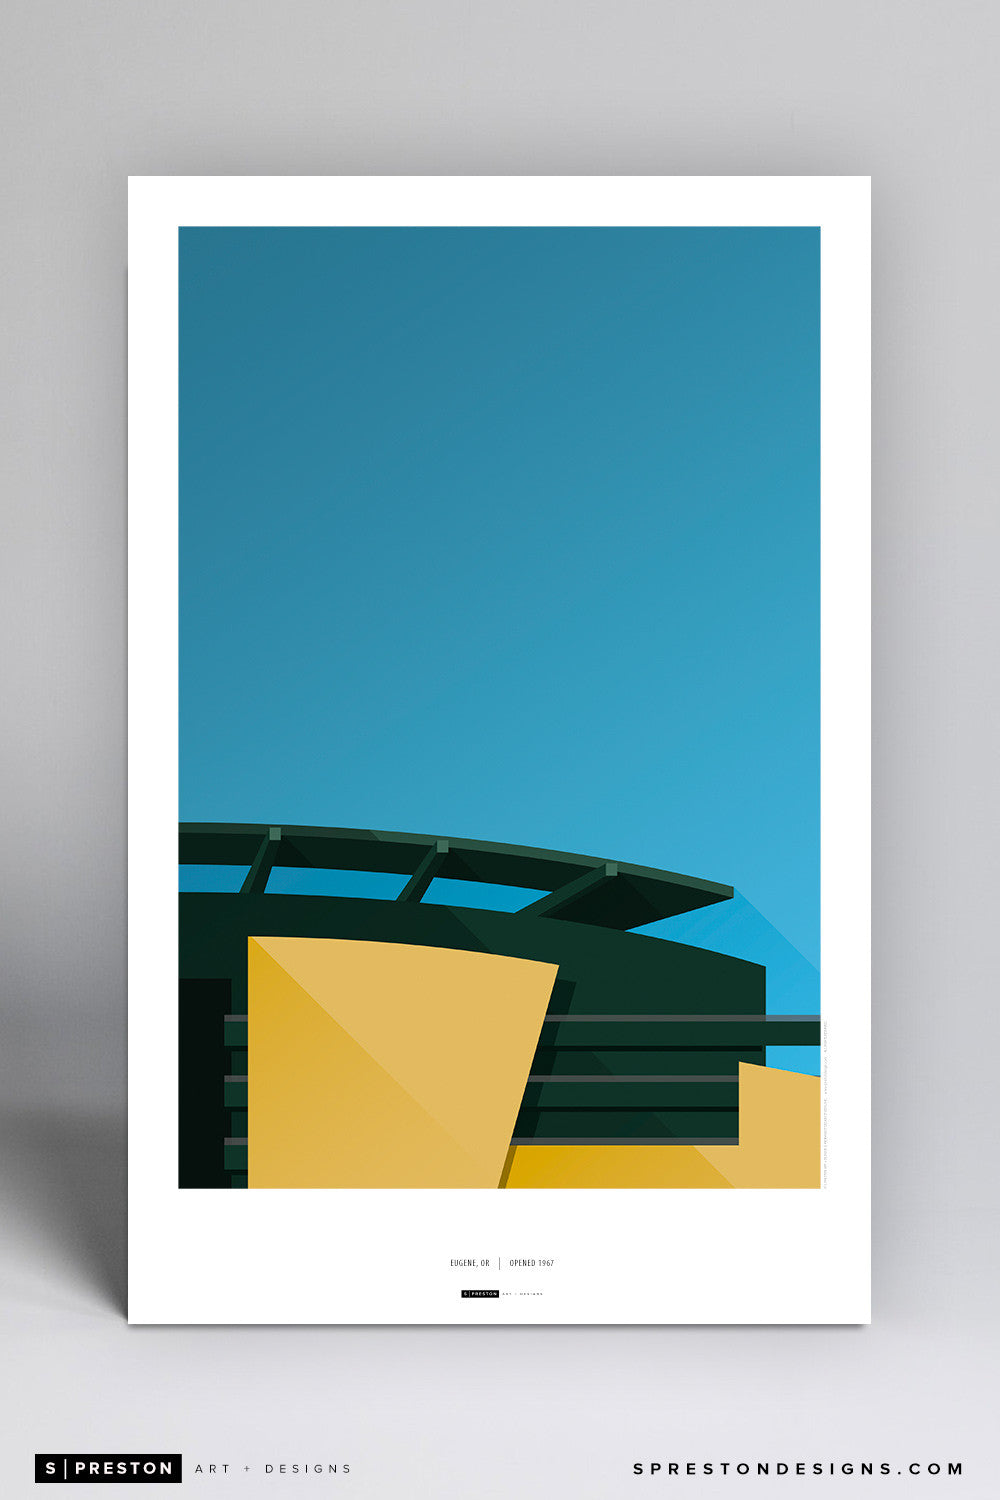 Minimalist Autzen Stadium Poster Print University of Oregon - S Preston